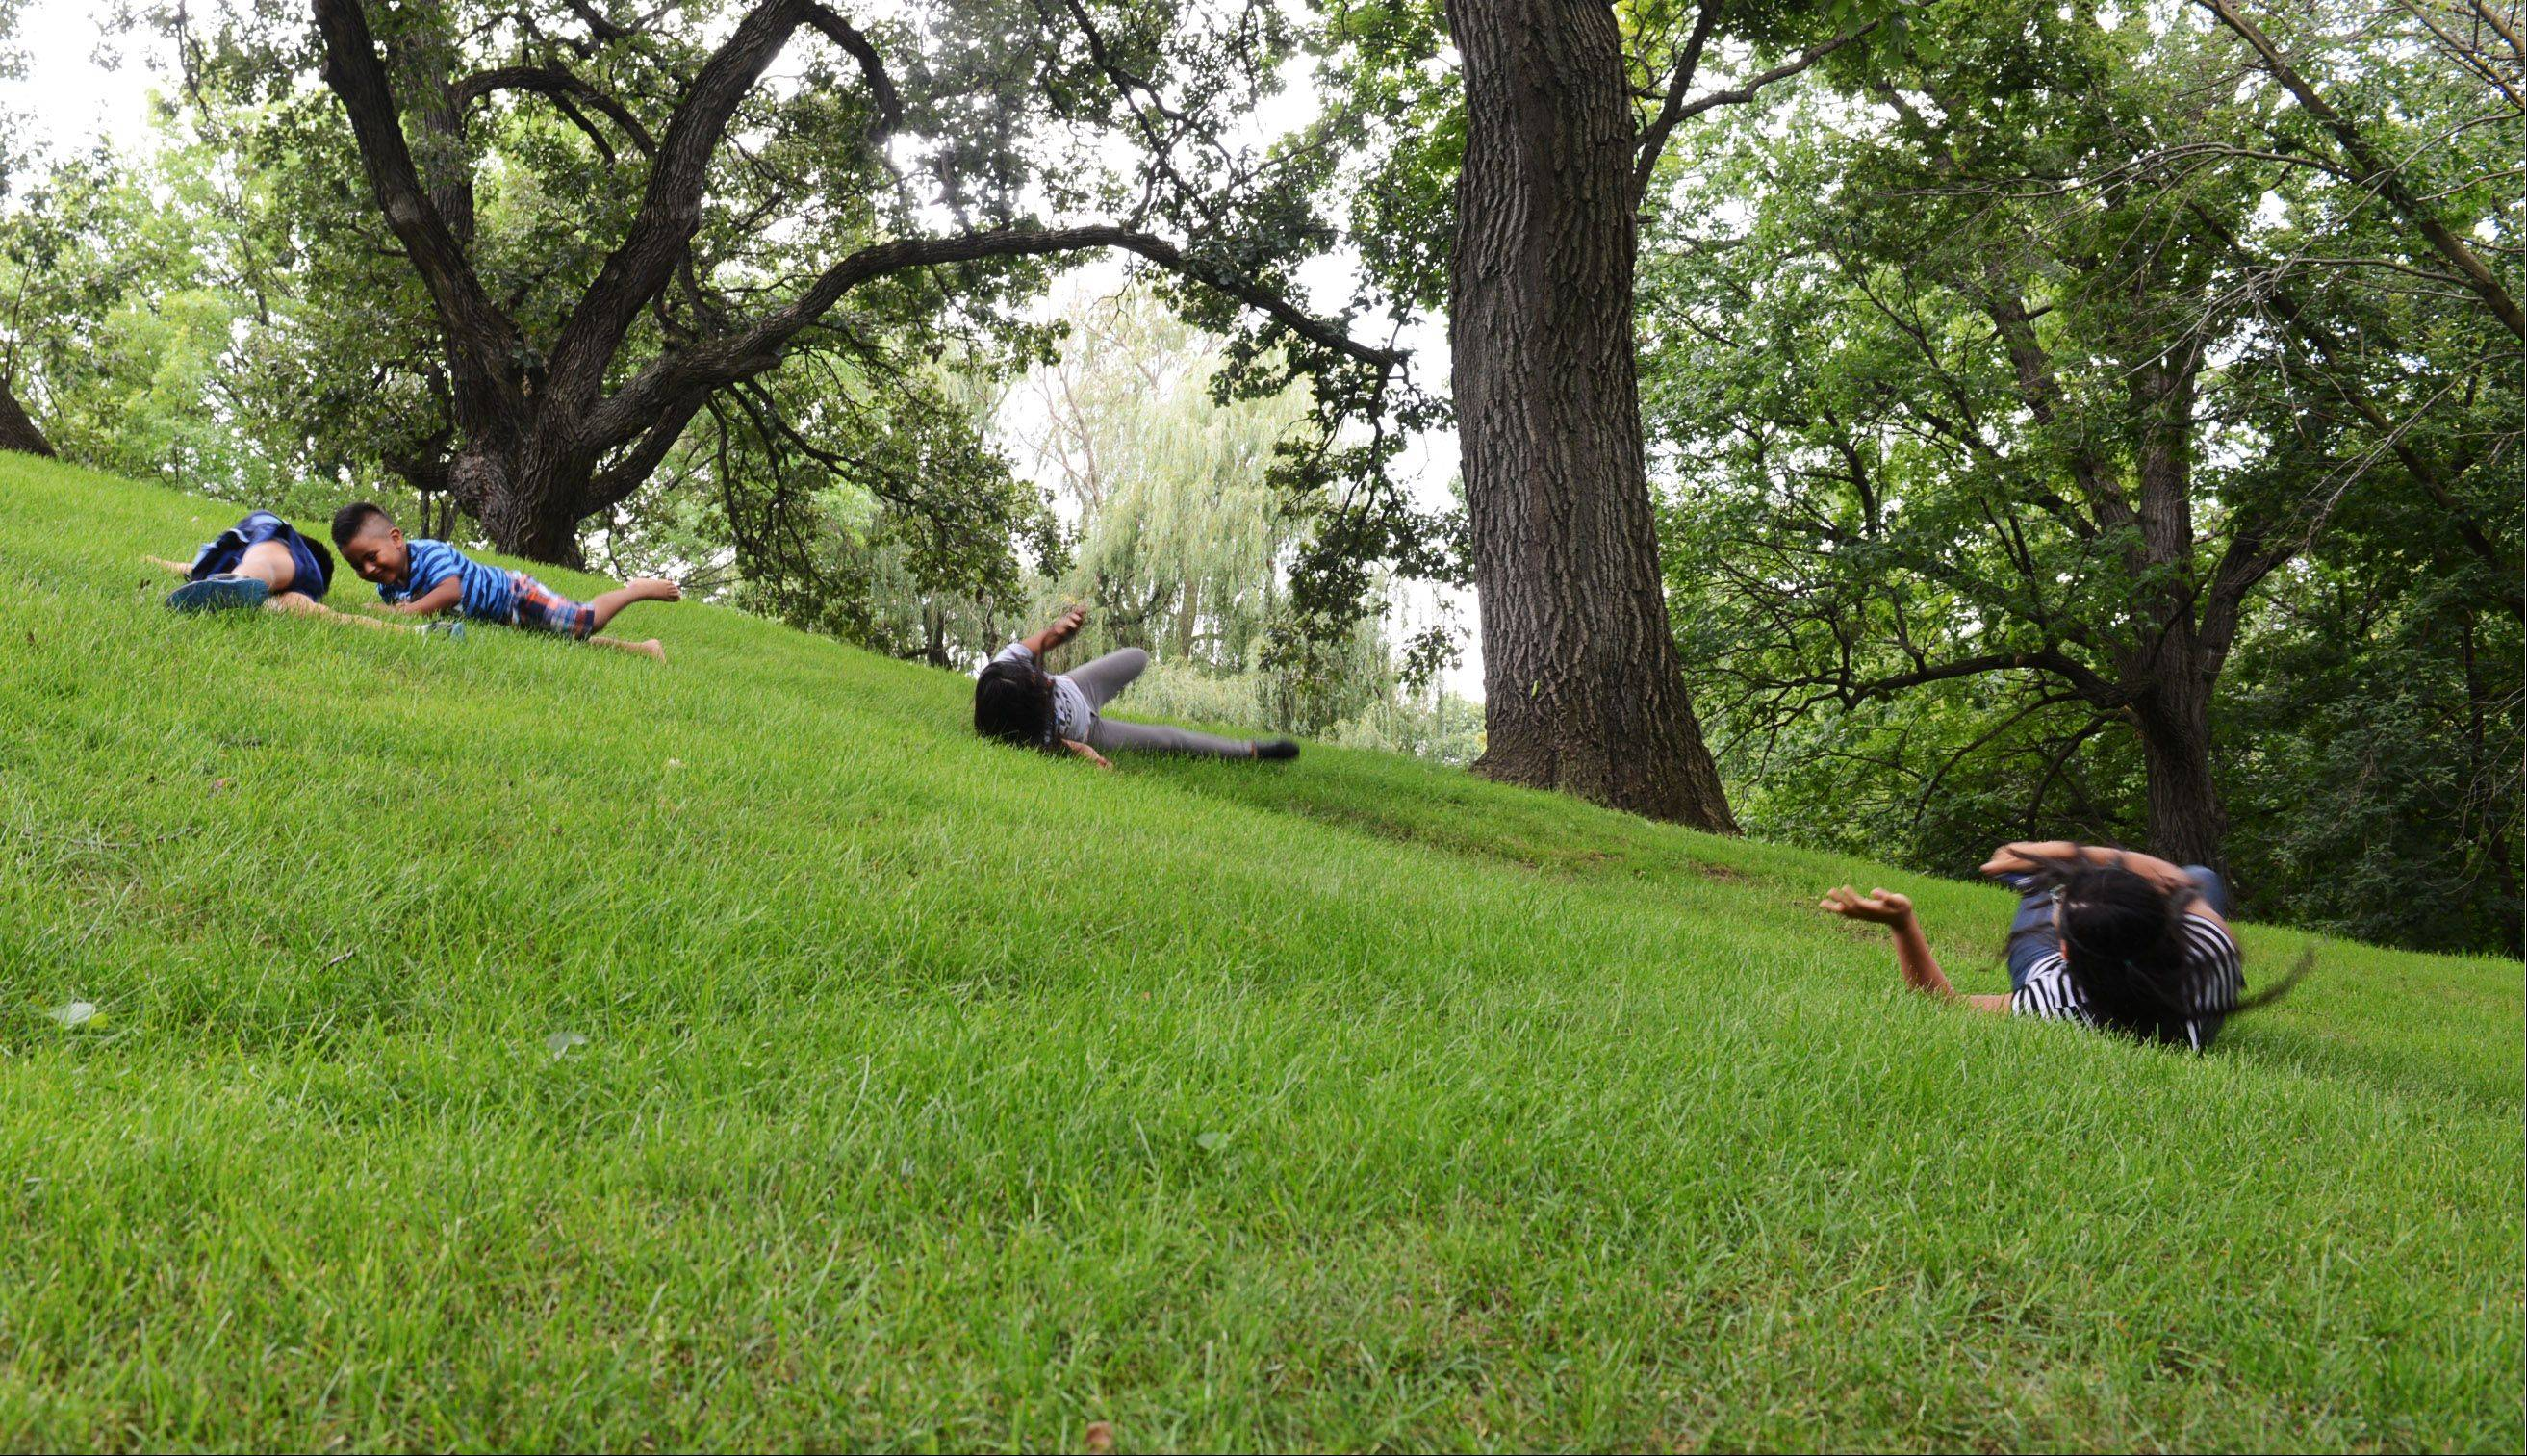 Jonathan Nicolas, 10, Neftaly Sebastian, 7, Edid Nicolas, 10, and Abby Sebastian, 12, roll down a hill in Lords Park in Elgin Monday. The children, all of whom are from Elgin, were there for an afternoon in the park with their families.